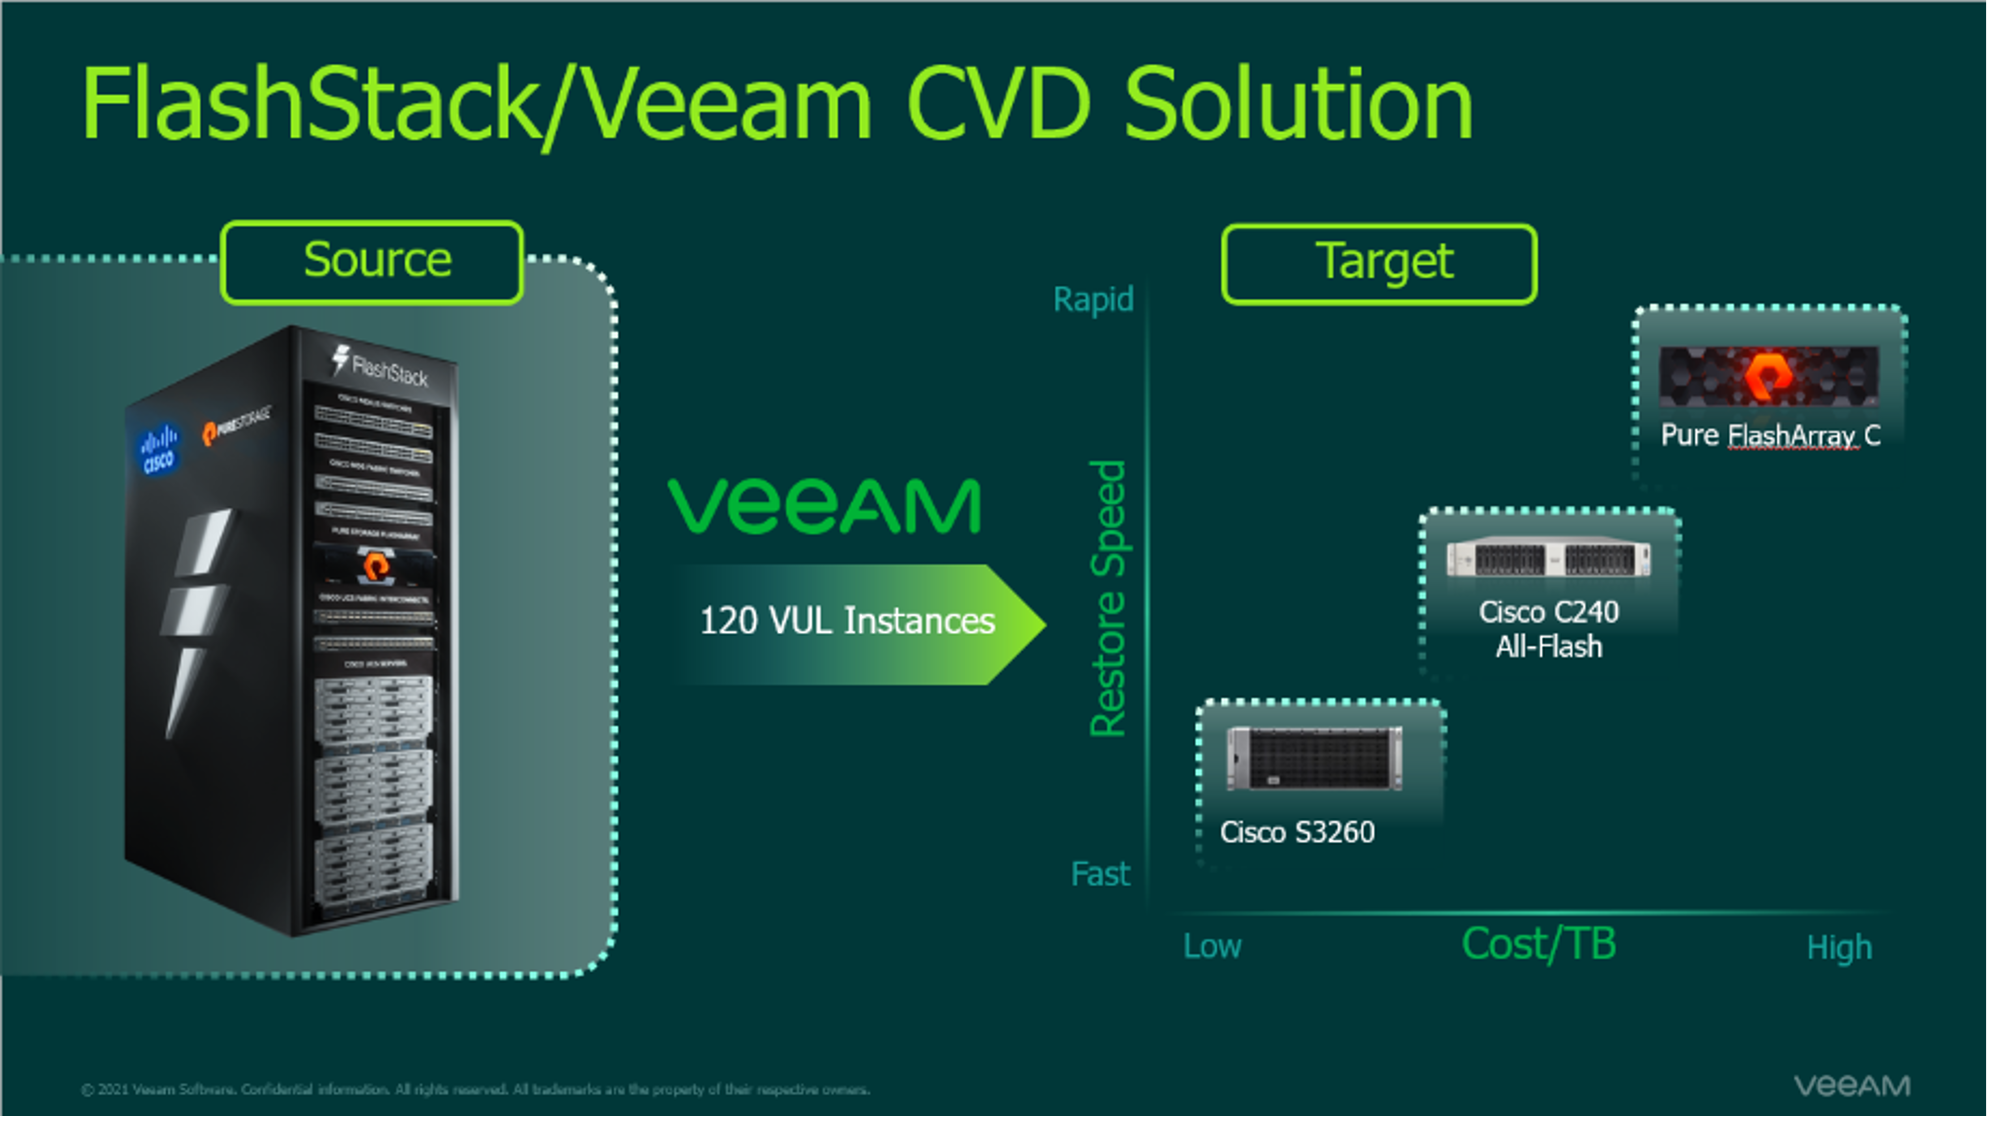 Extend your organization resilience to business essential applications with Veeam, Pure and cisco Storage